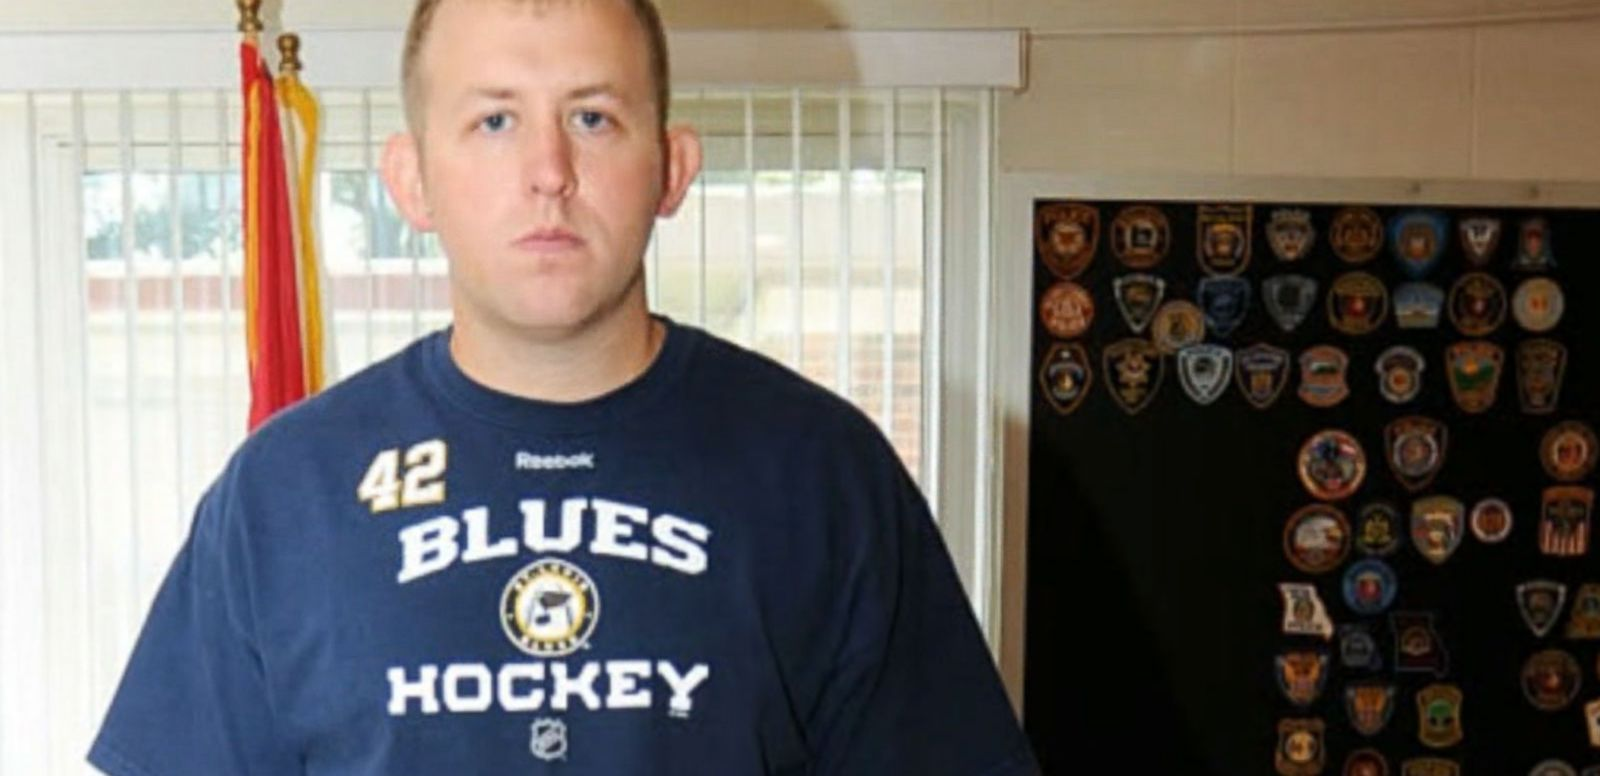 VIDEO: Ferguson Officer Darren Wilson Cannot Find Work